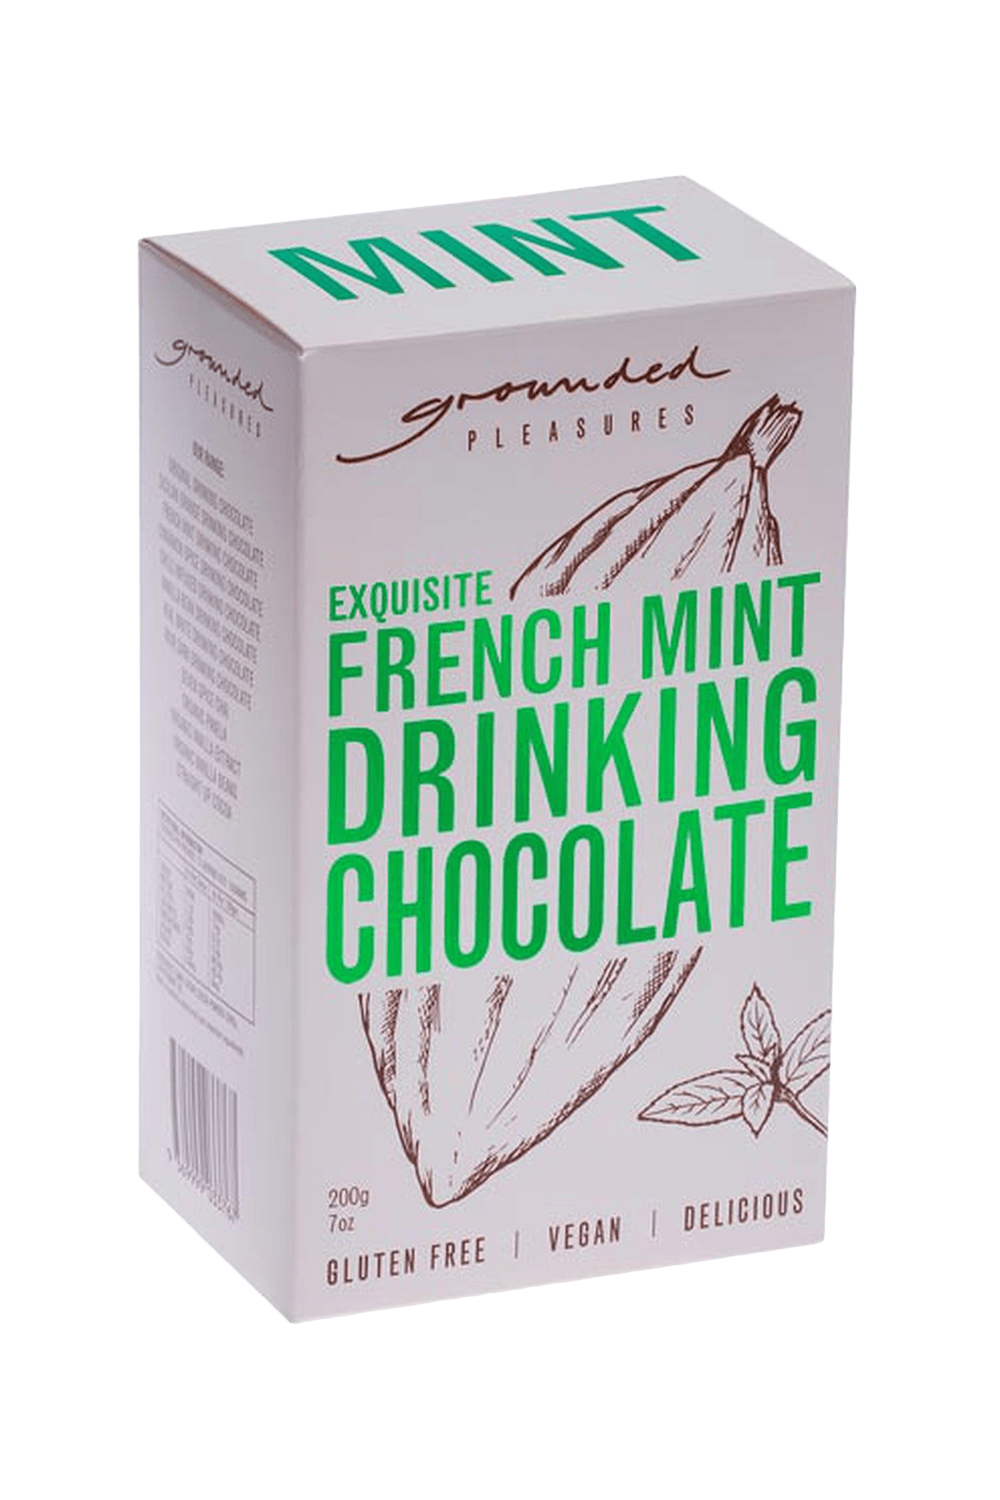 buy cafe products grounded pleasures drinking chocolate french mint drinking chocolate